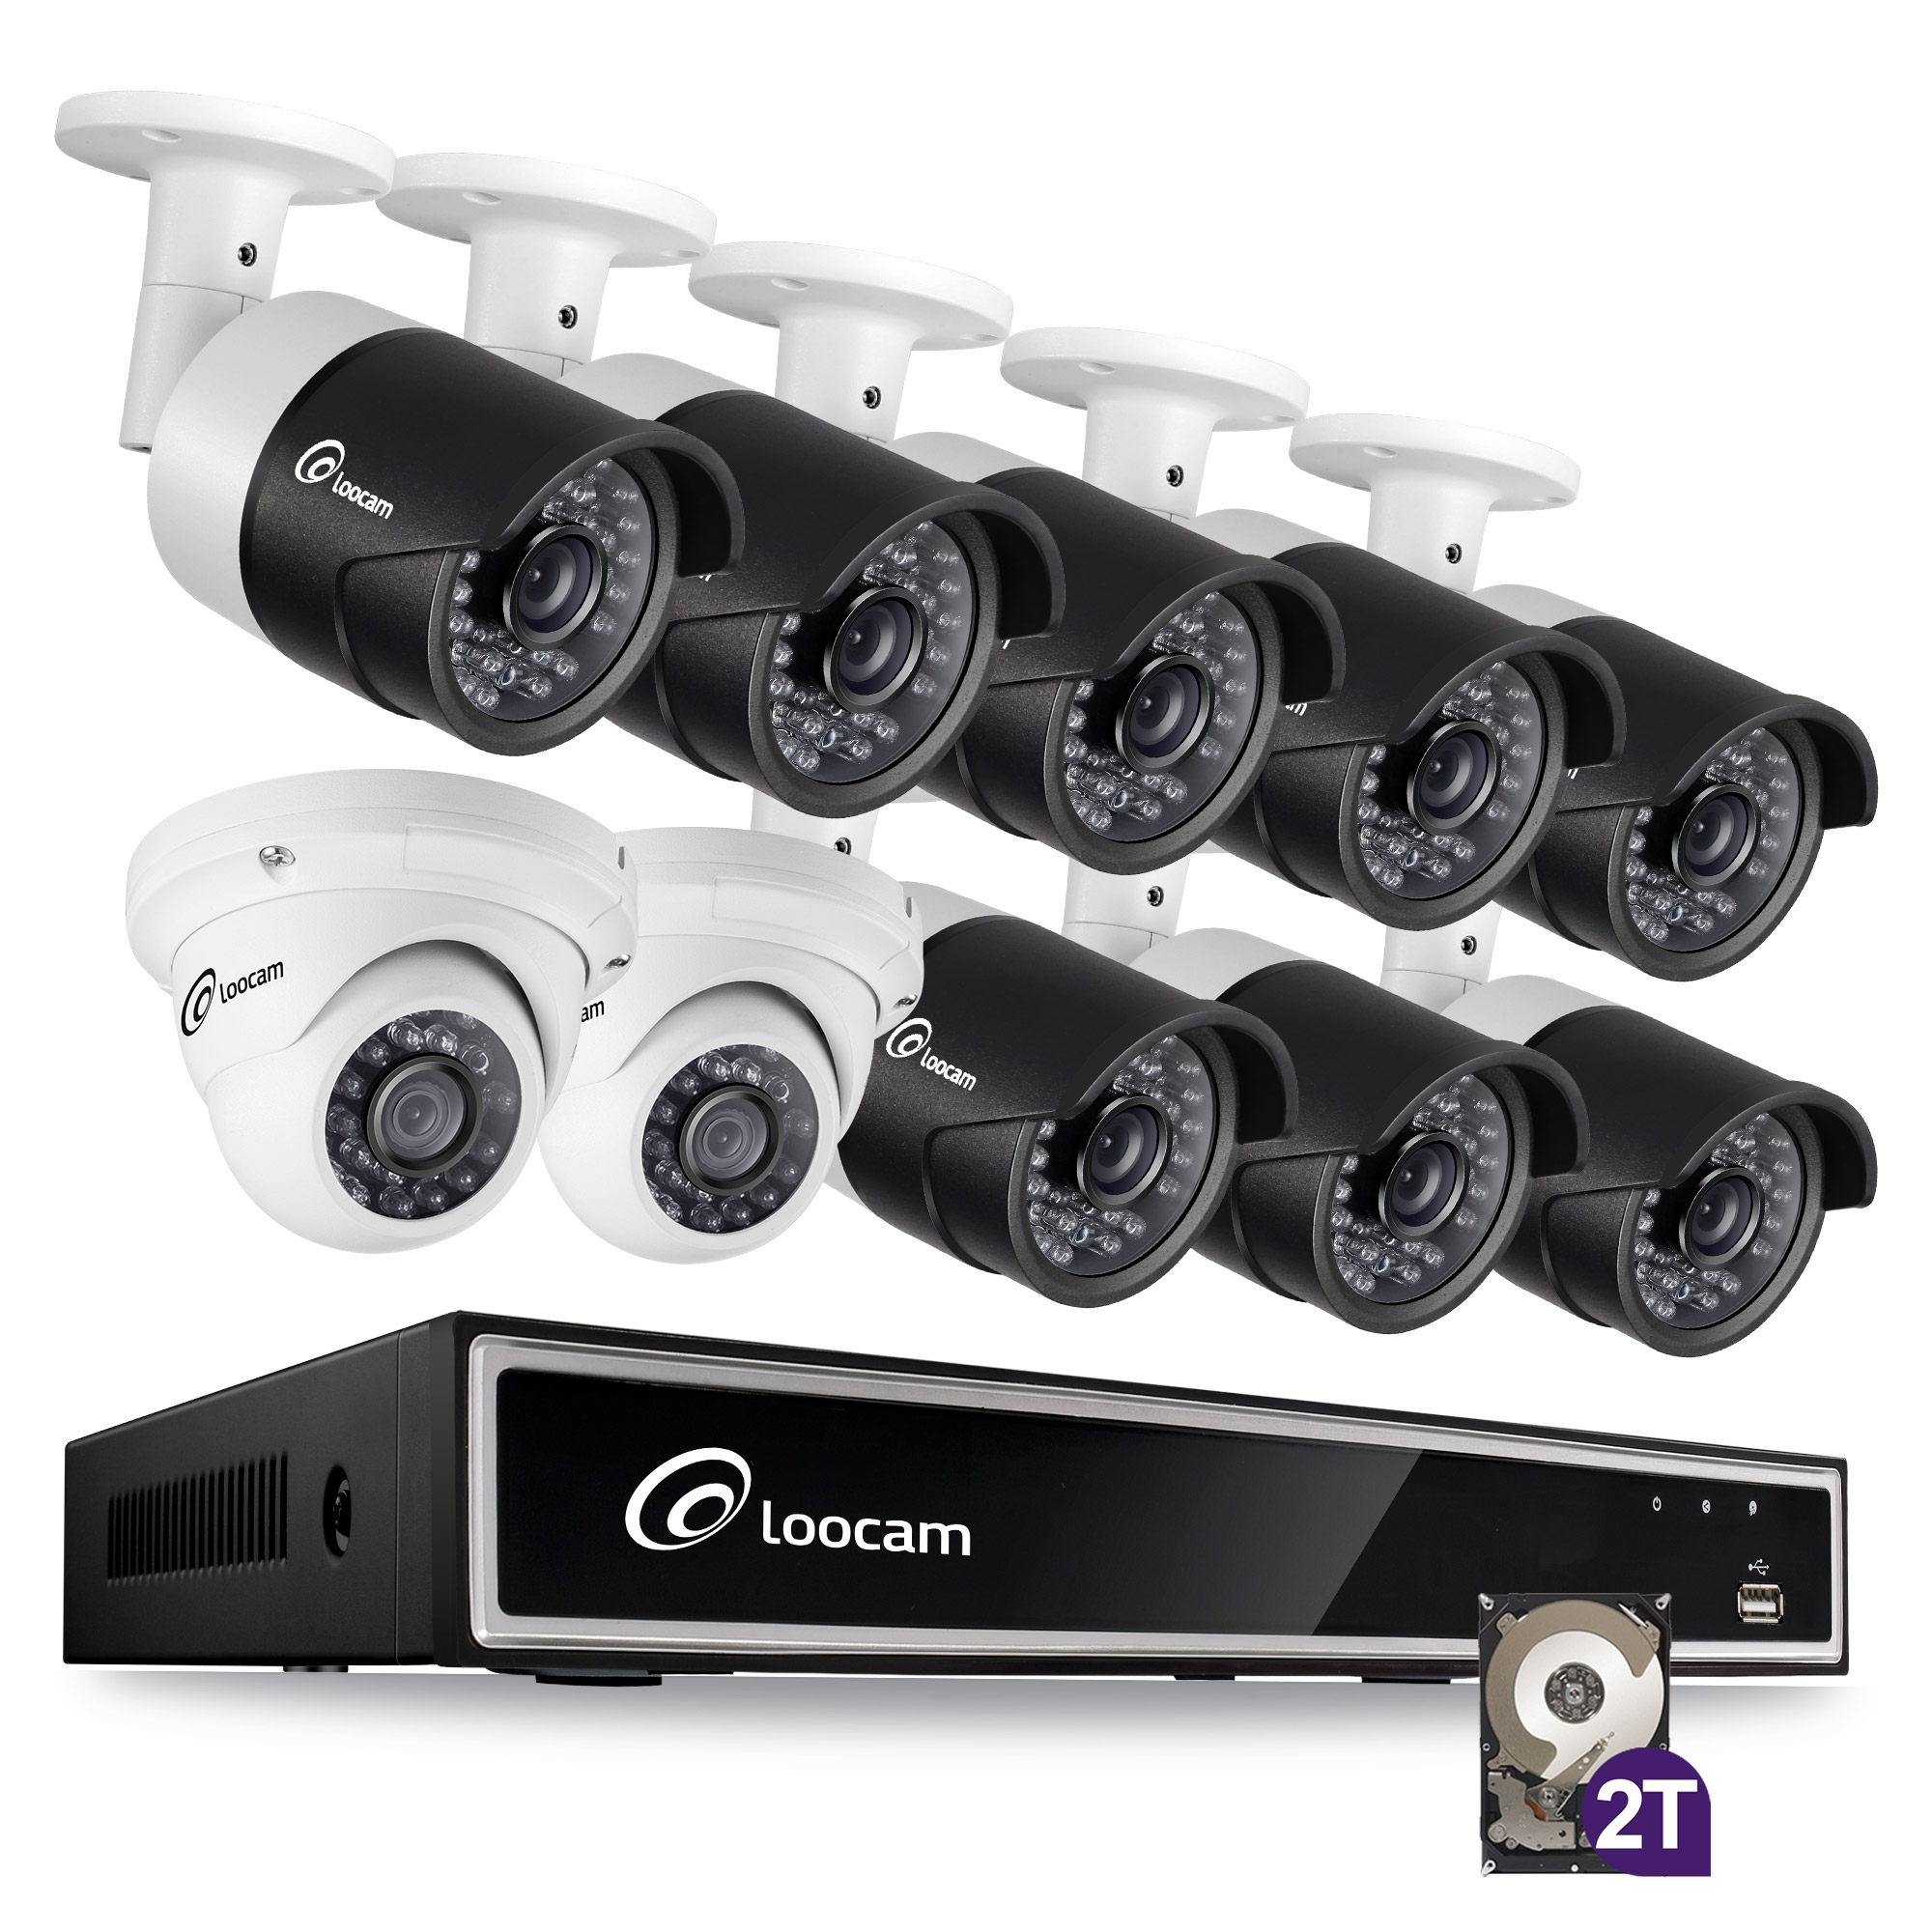 Loocam 1080p HD 16 Channel HD-TVI Video Security Camera System, 2TB DVR Kit, with 8 pcs 2MP Outdoor/Indoor IR Weatherproof Bullet Cameras and 2 pcs Dome Cameras